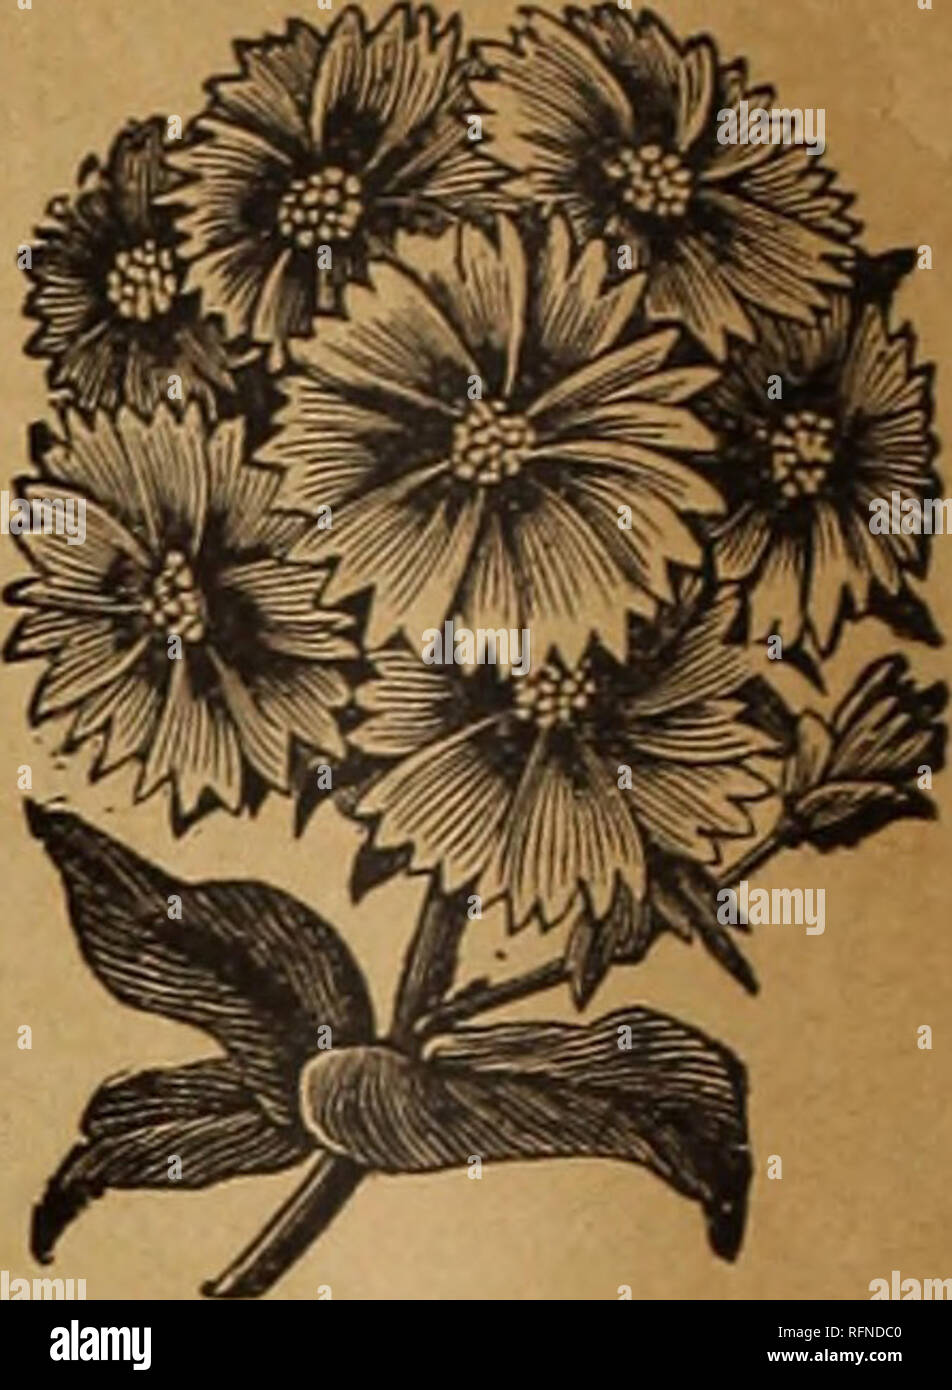 . Nebraska Seed Co.'s annual catalogue : reliable garden and farm seeds. Nursery stock Nebraska Omaha Catalogs; Flowers Seeds Catalogs; Vegetables Seeds Catalogs. 83. Pansy, Odier, or Five Blotched—A magnificent variety, each pedal having a large blotch with clearly defined margin.. .10c 84. Pansy, Striped—Q u e e r 1 y marked and striped, producing immense blossoms of the most exquisite and showy tints 10c 85. Pansy, German Extra- Choice, mixed 10c 86. Pansy, fine, mixed 5c PAGES 54 TO 57. PHLOX DRUMMONDII. These flowers are of extreme beauty, and are greatly admired by all. Their long durati - Stock Image